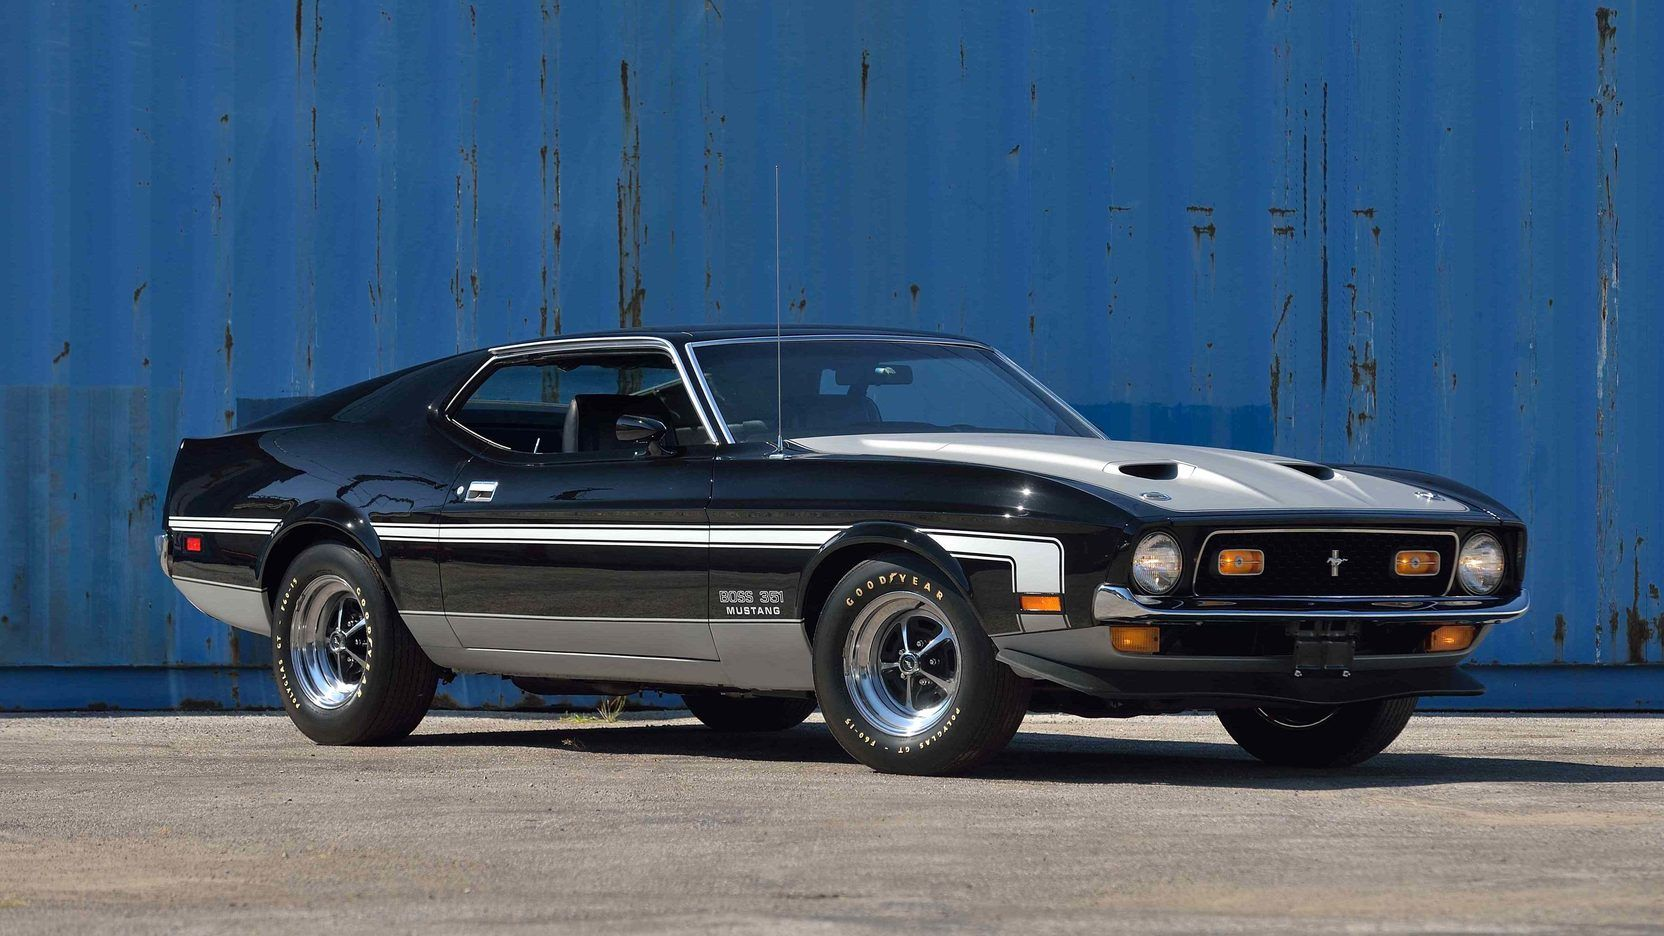 1971 Ford Mustang Boss 351 Fastback 1971 Ford Mustang Ford Mustang Boss Mustang Boss